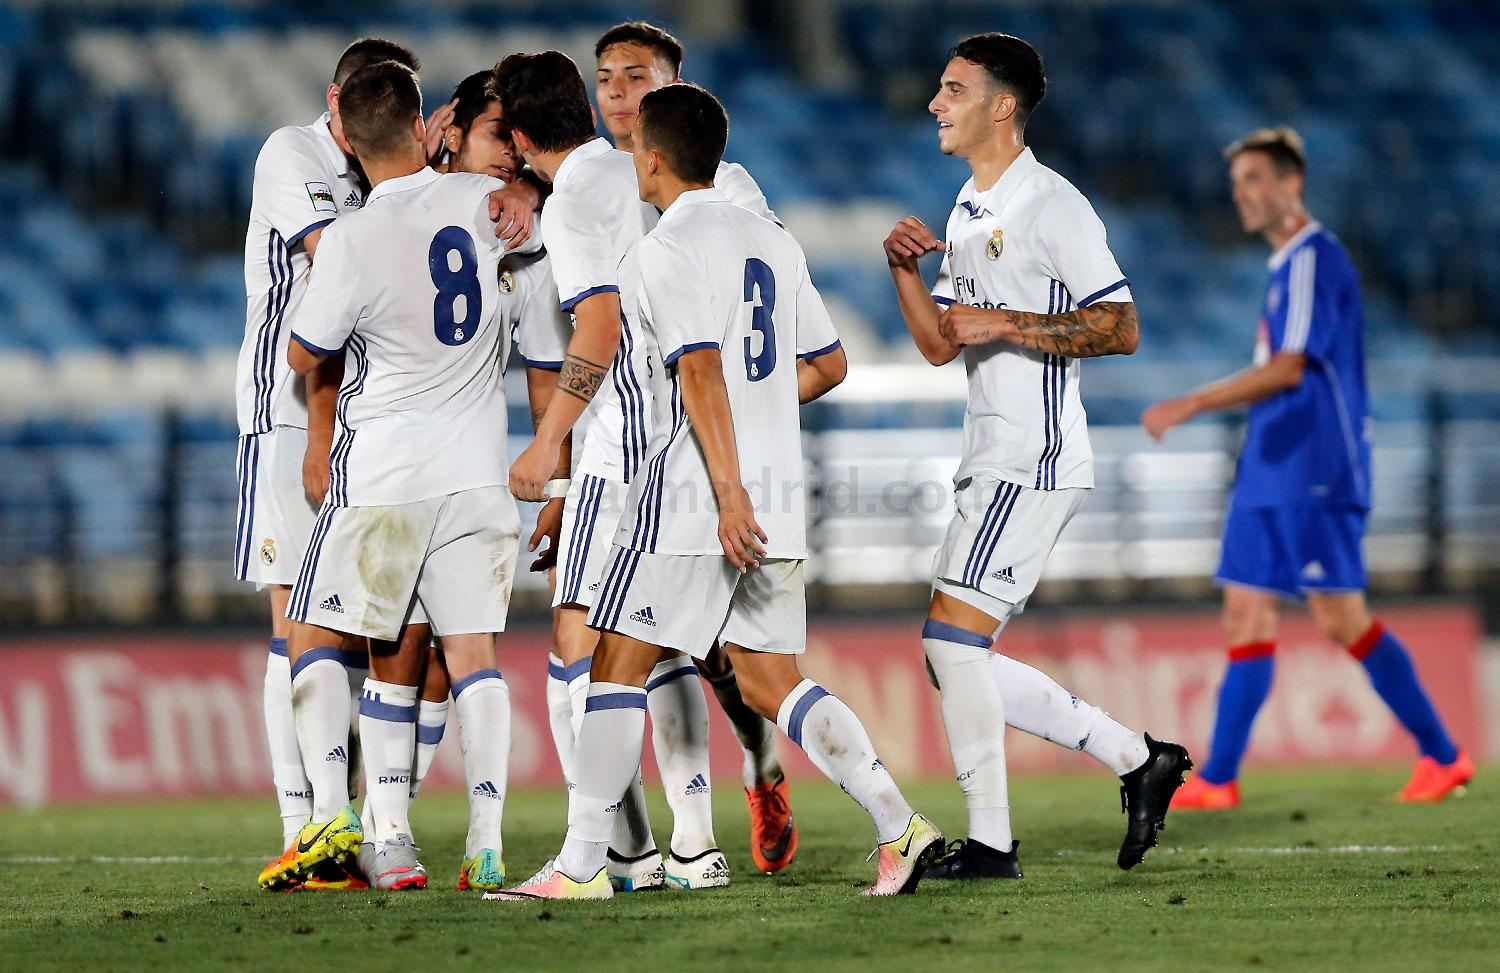 Real Madrid - Real Madrid Castilla - Amorebieta - 03-09-2016